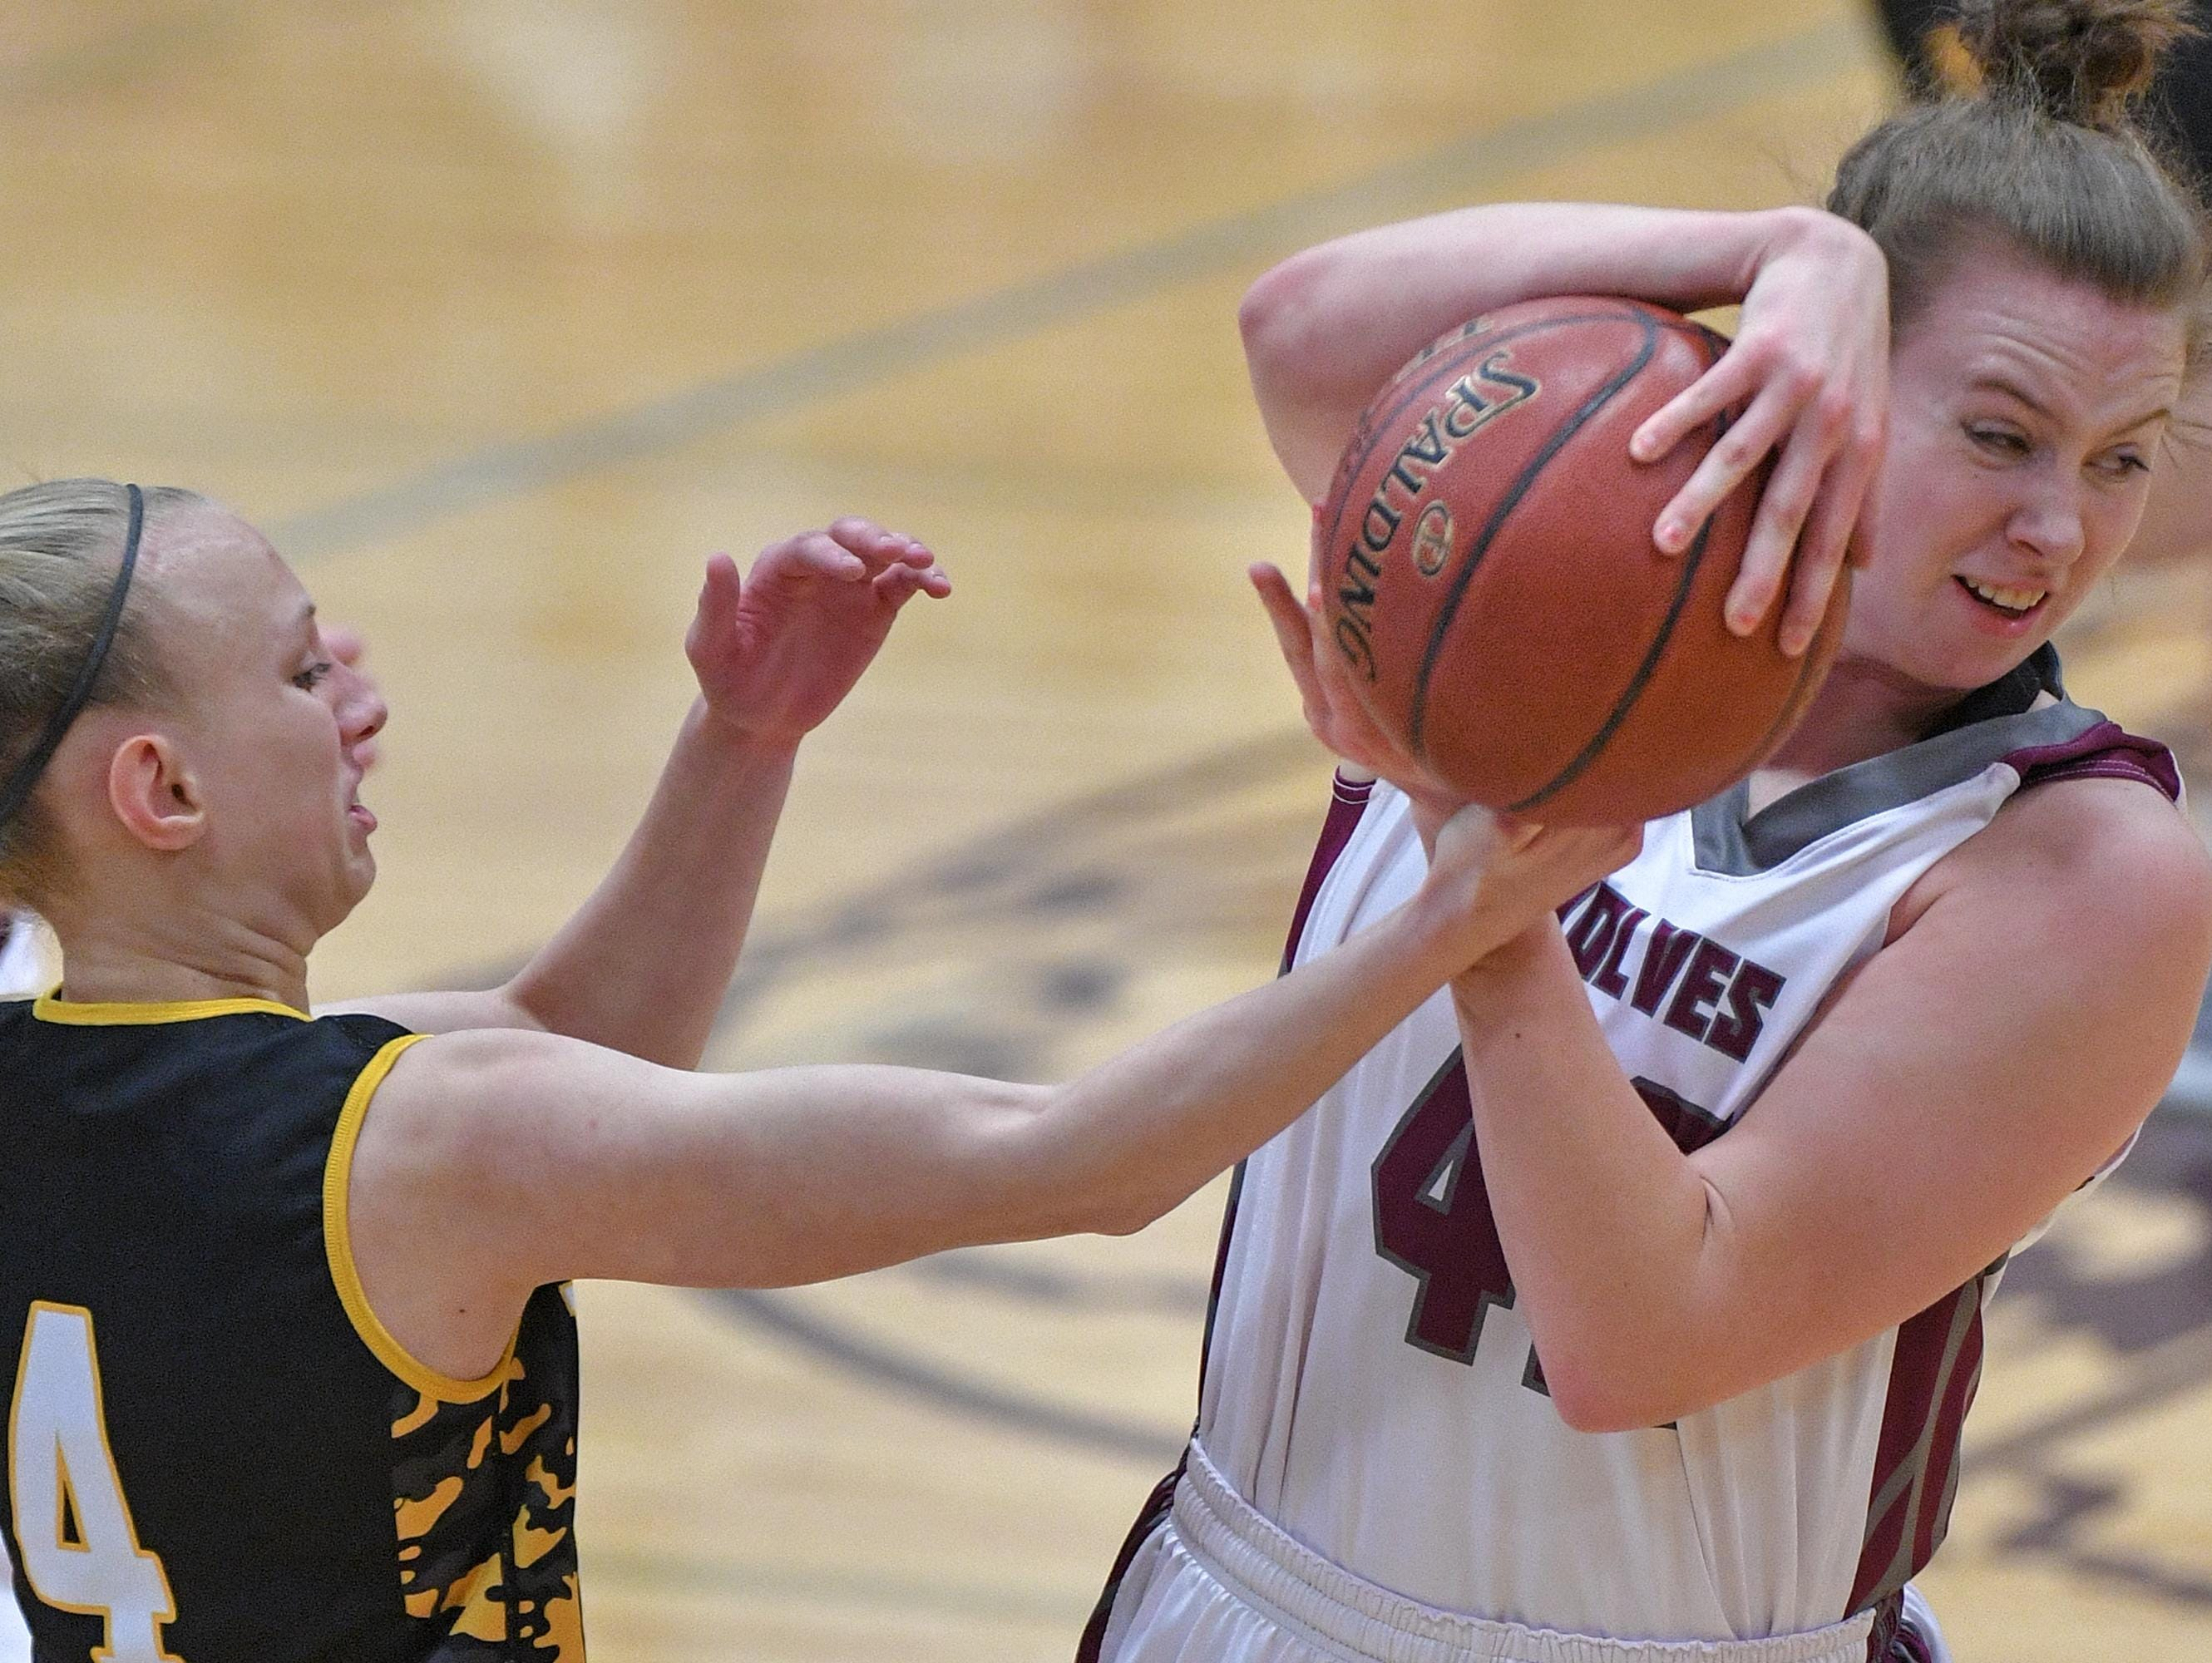 Sadie Kosciuk, right, of Winneconne tries to keep Tiana Gaubatz of Waupun from stealing the ball Thursday in Winneconne.